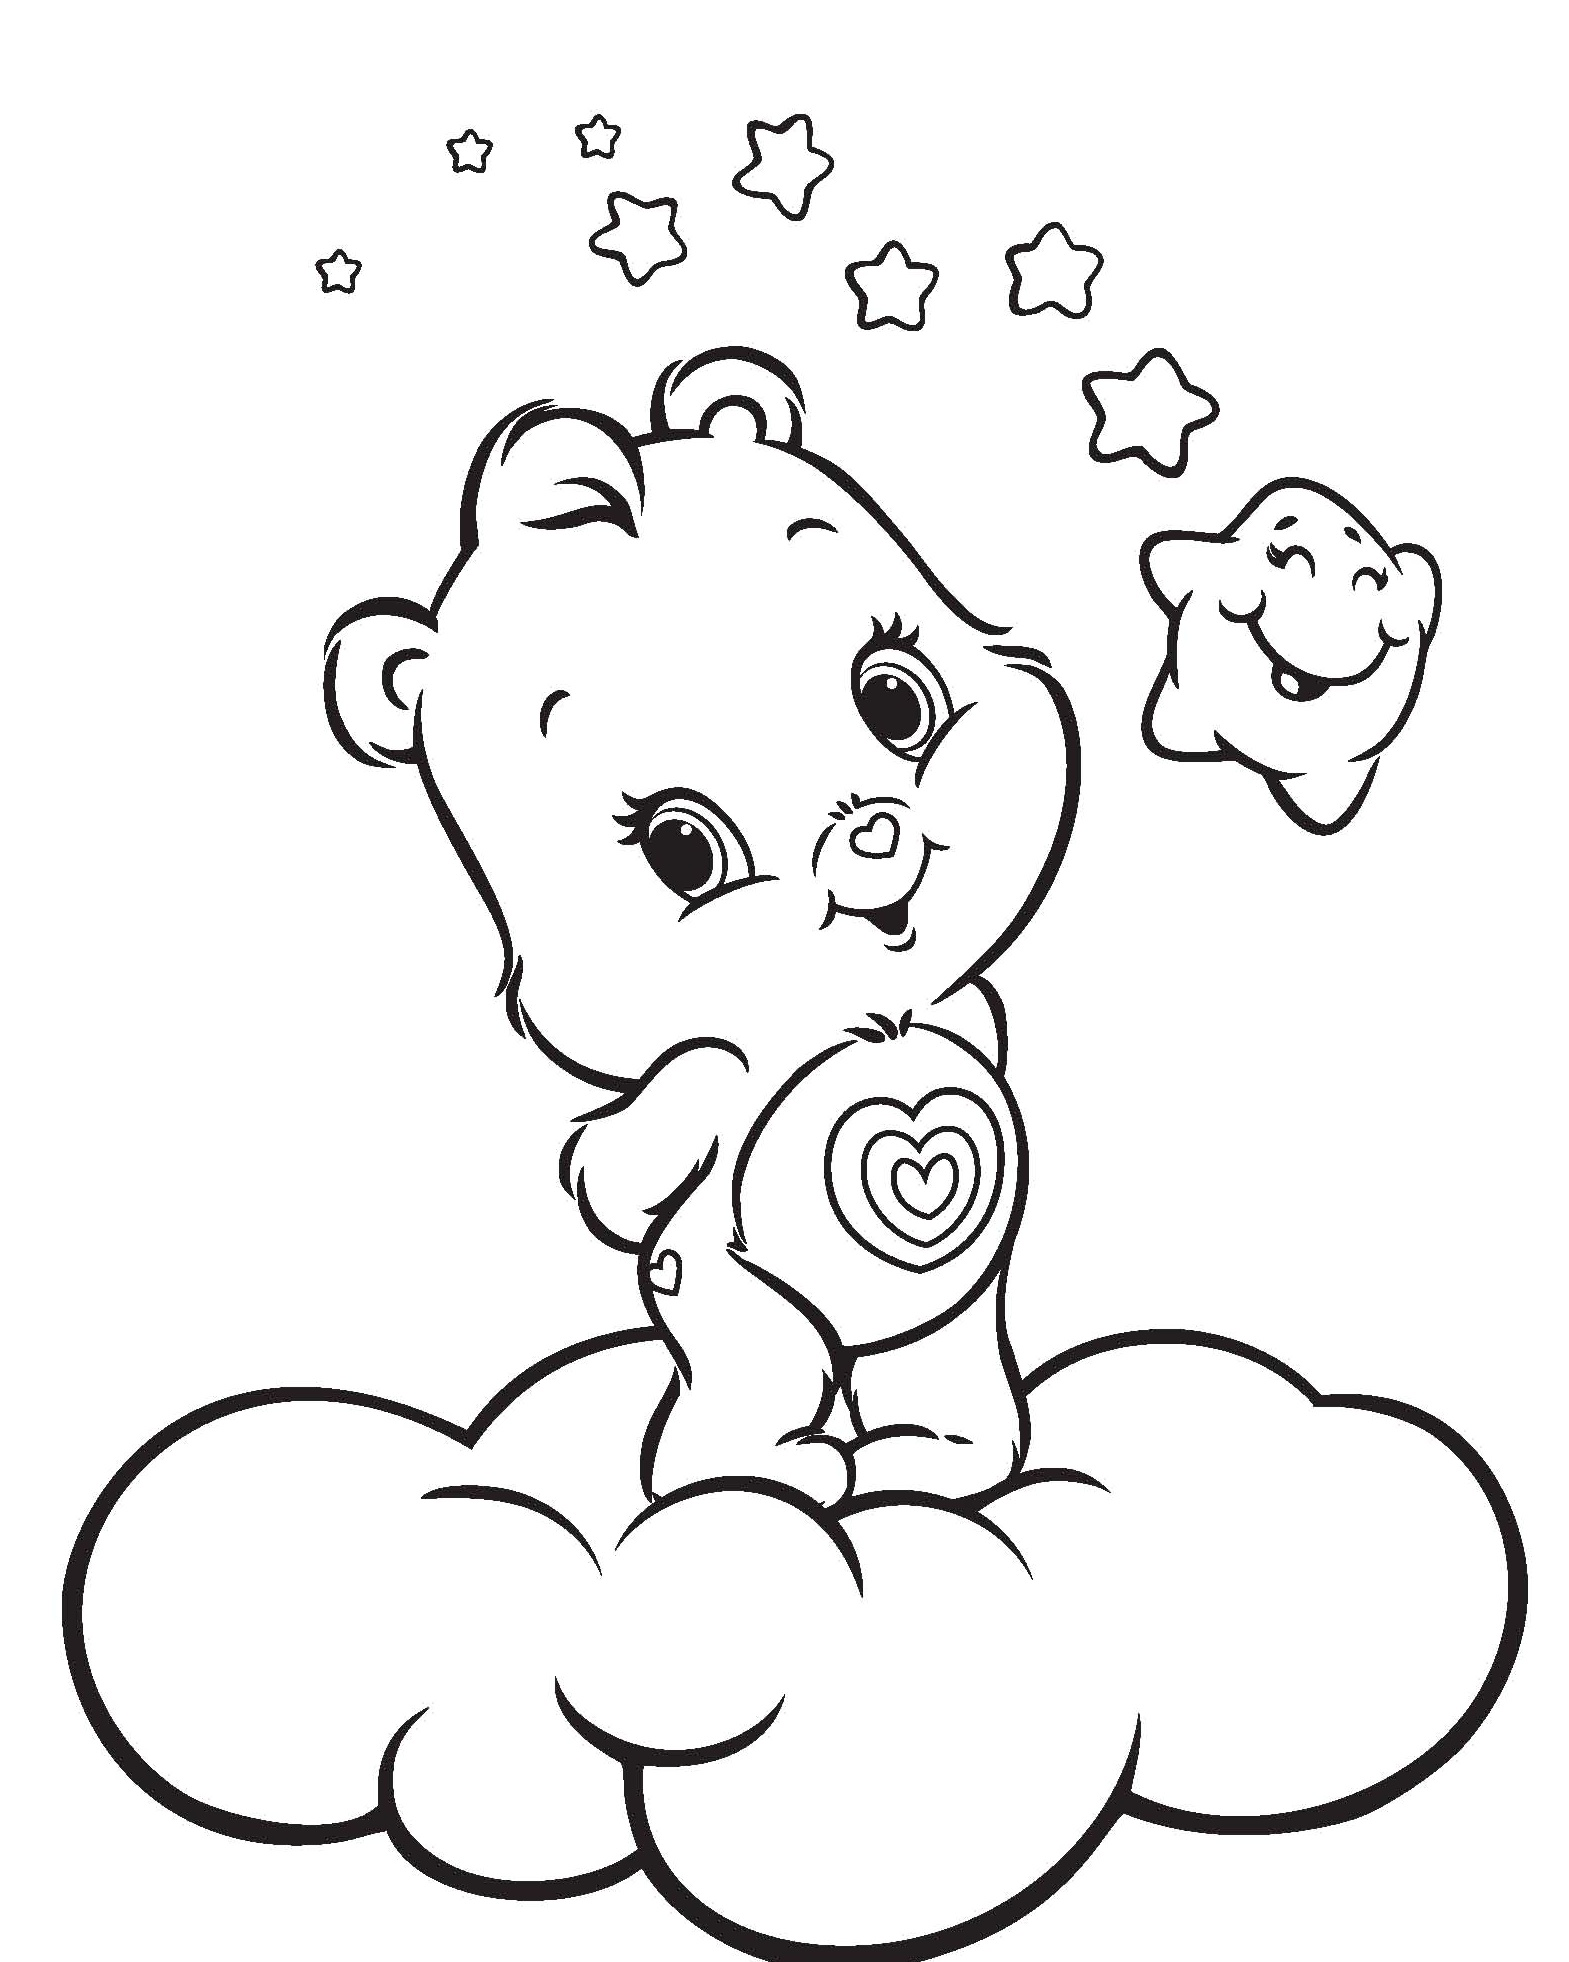 Braveheart Lion Care Bear Coloring Page Sketch Coloring Page